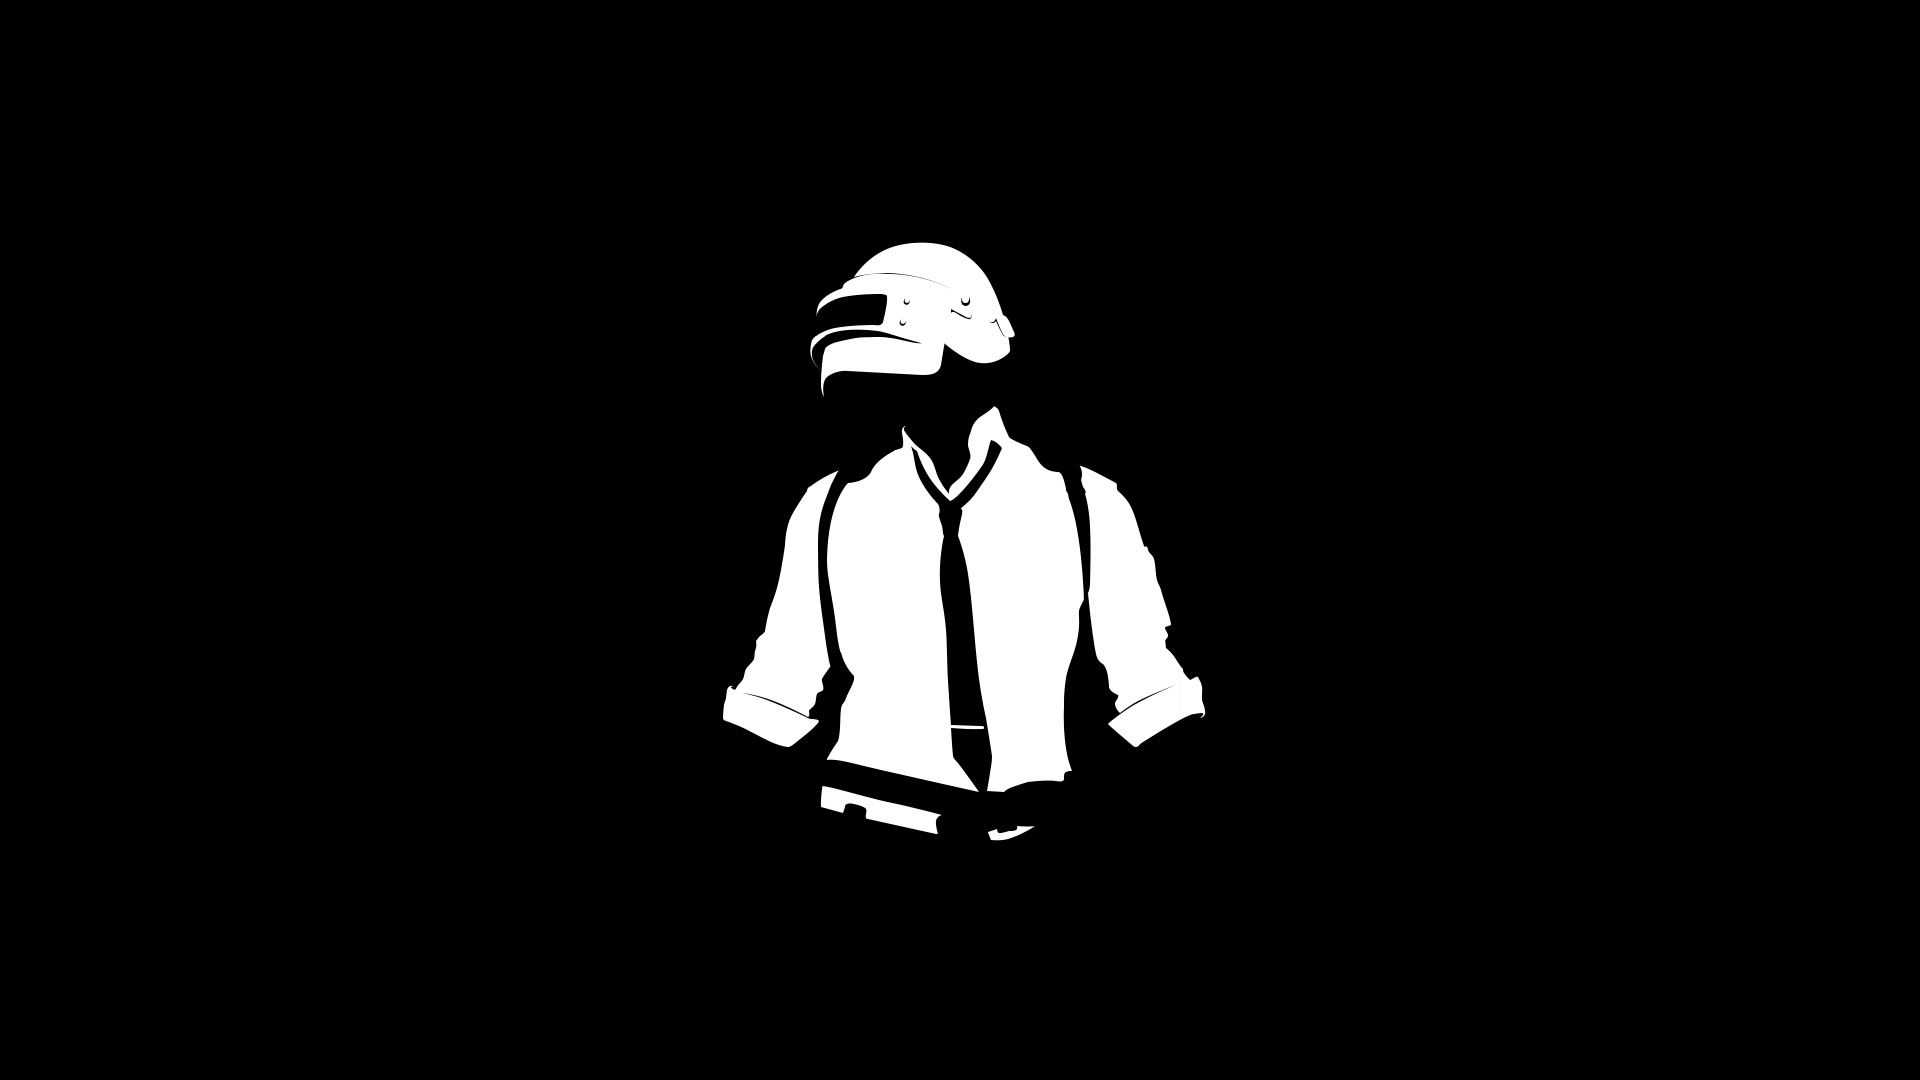 Download Pubg Minimalist Pophead 7680x4320 Resolution: PUBG HD Wallpapers